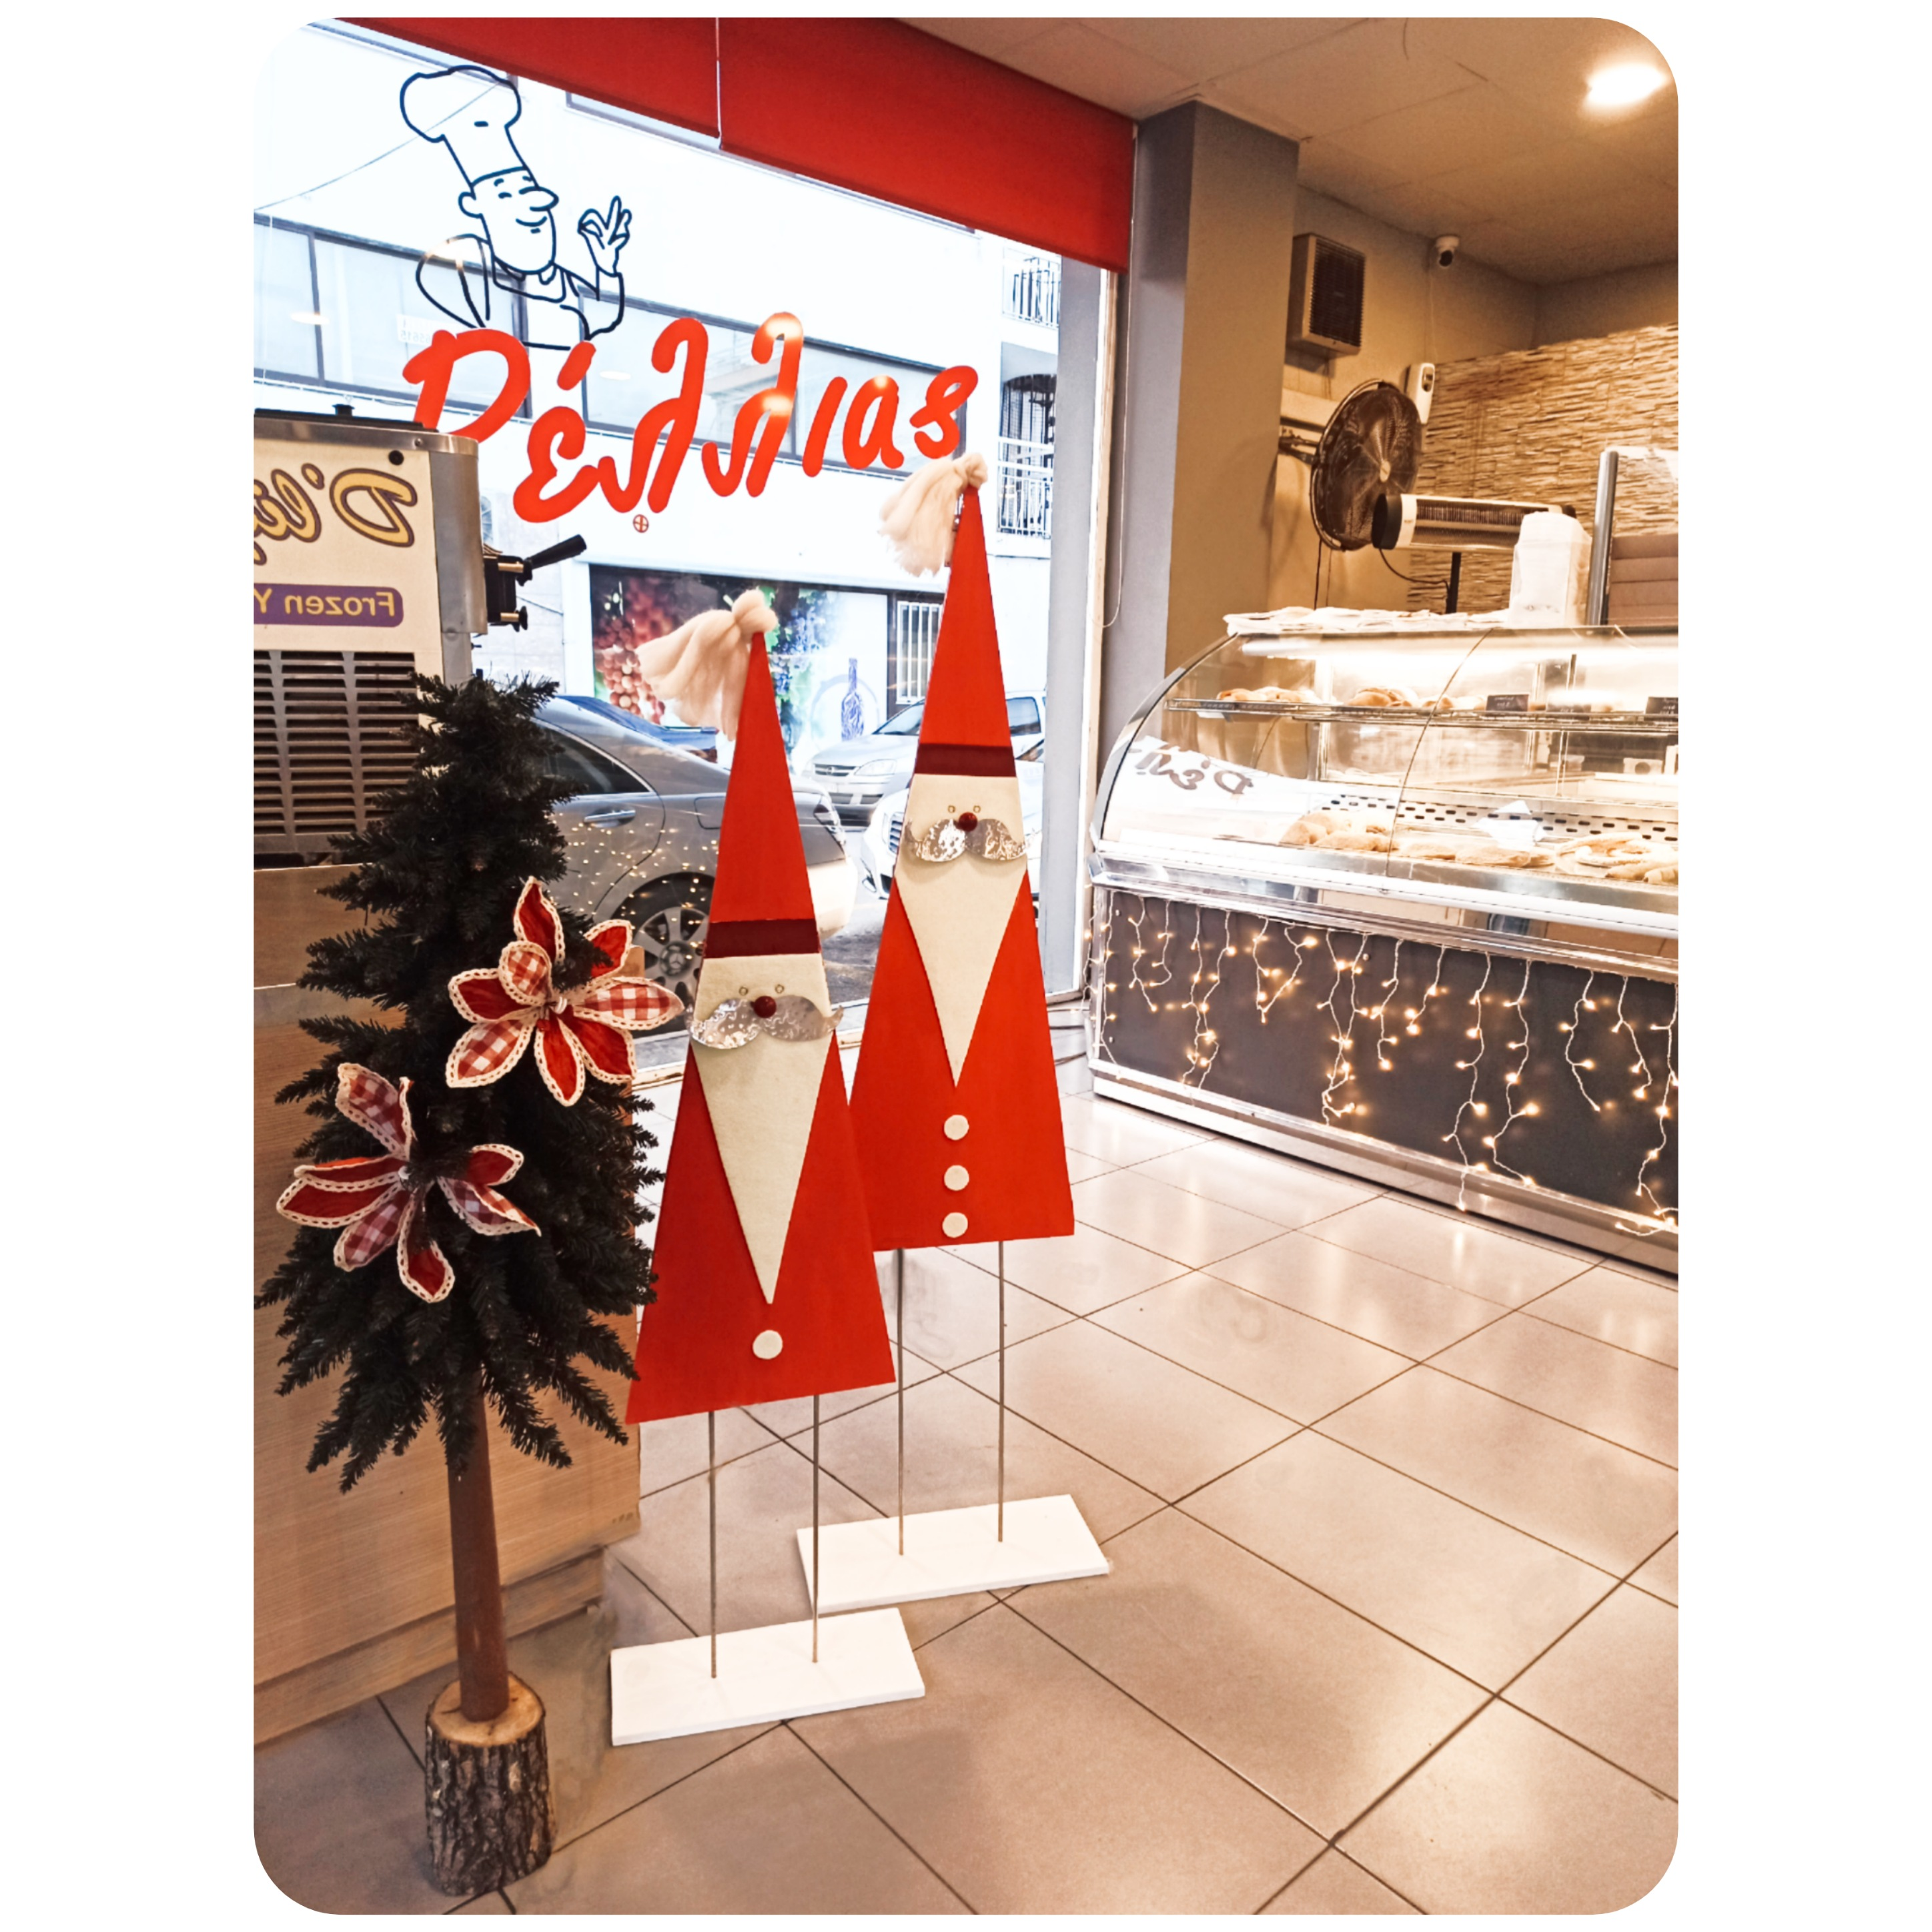 RelliasChristmasDecor20-21